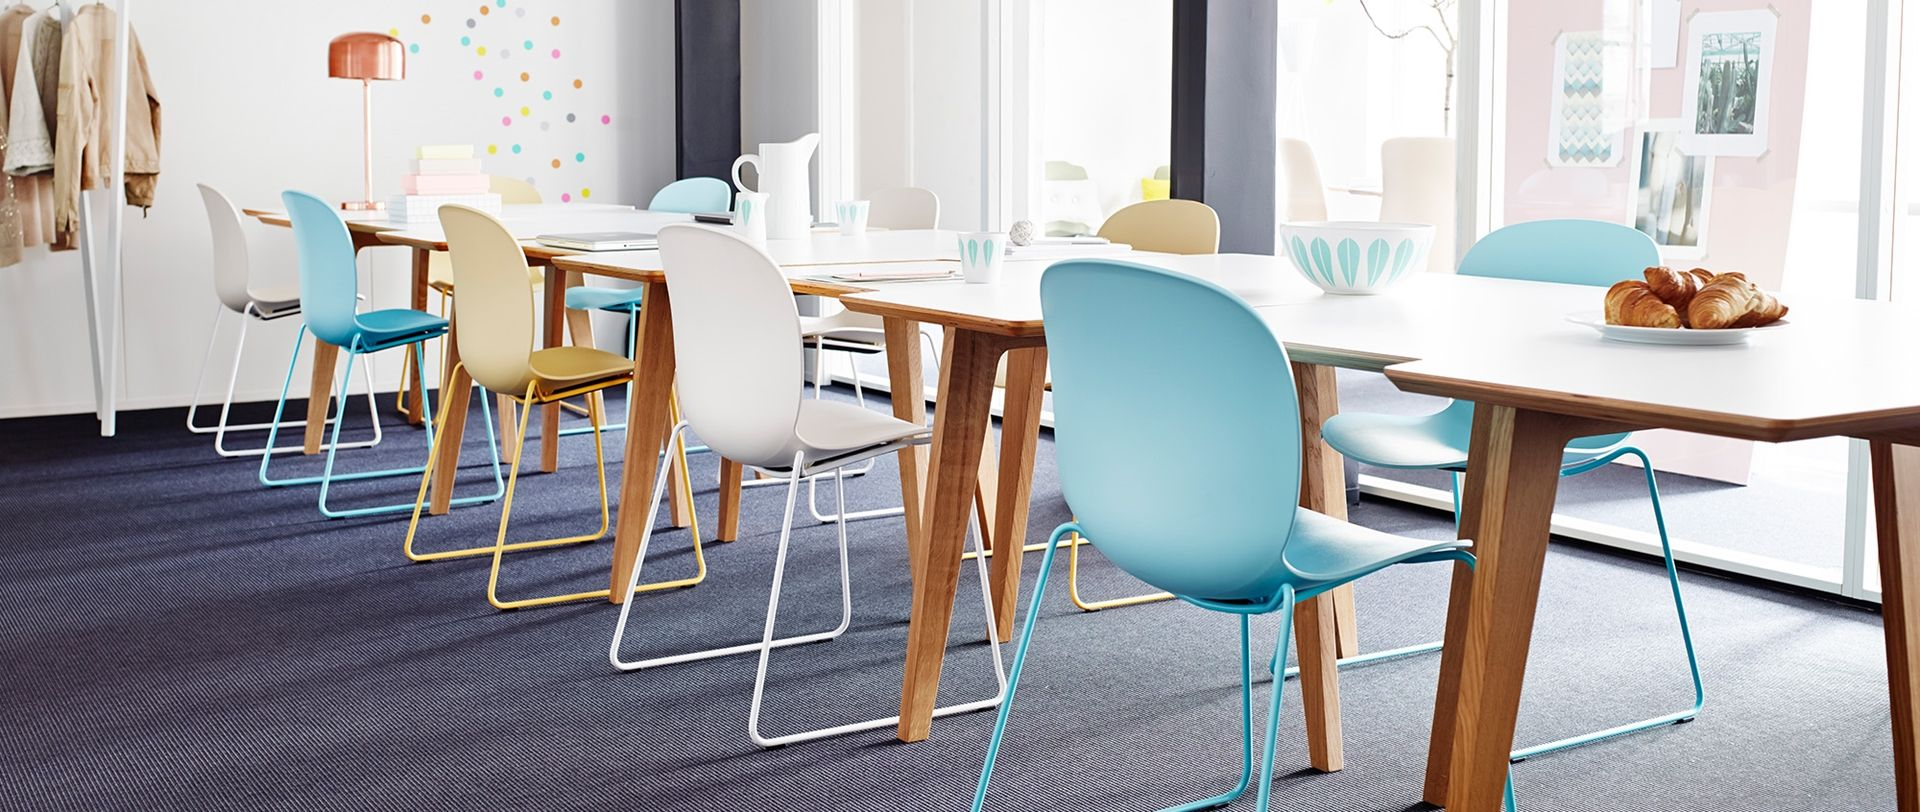 Pin By Flokk Sustainable Office Fur On My Furniture Pins Cafe Seating Cafe Chairs Table